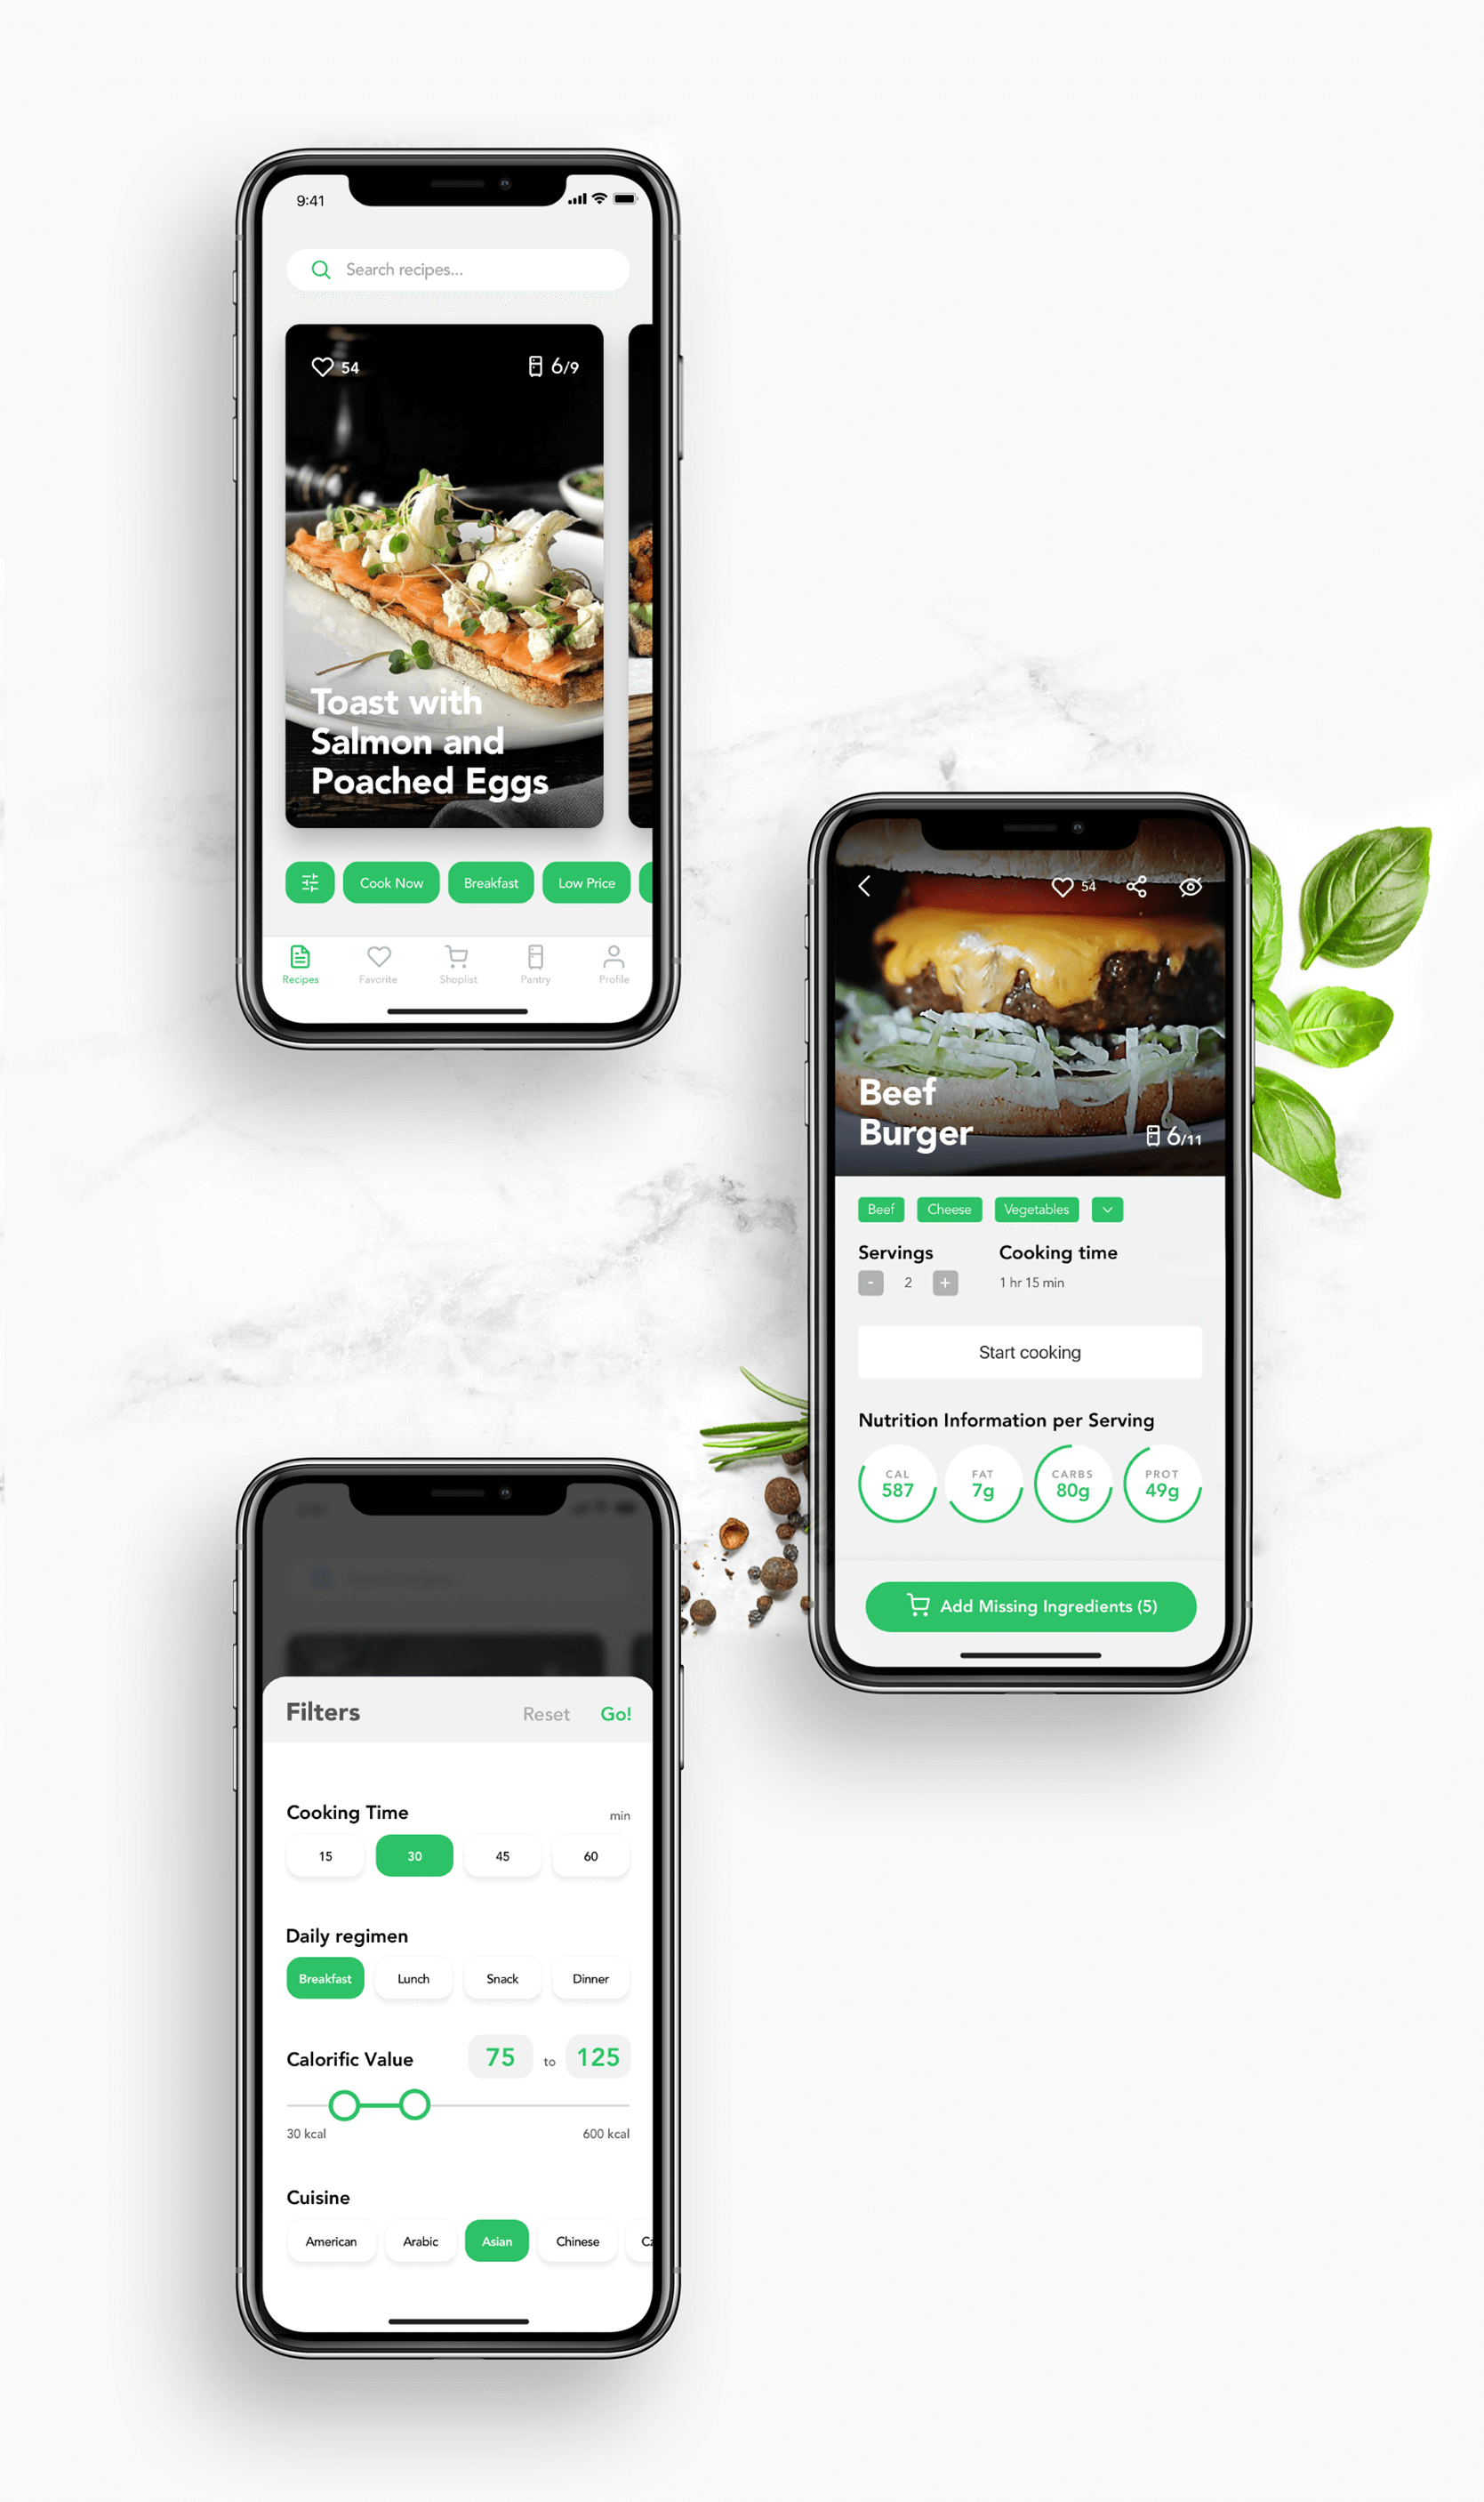 Case Study Perfect Recipes App Ux Design For Cooking And Shopping